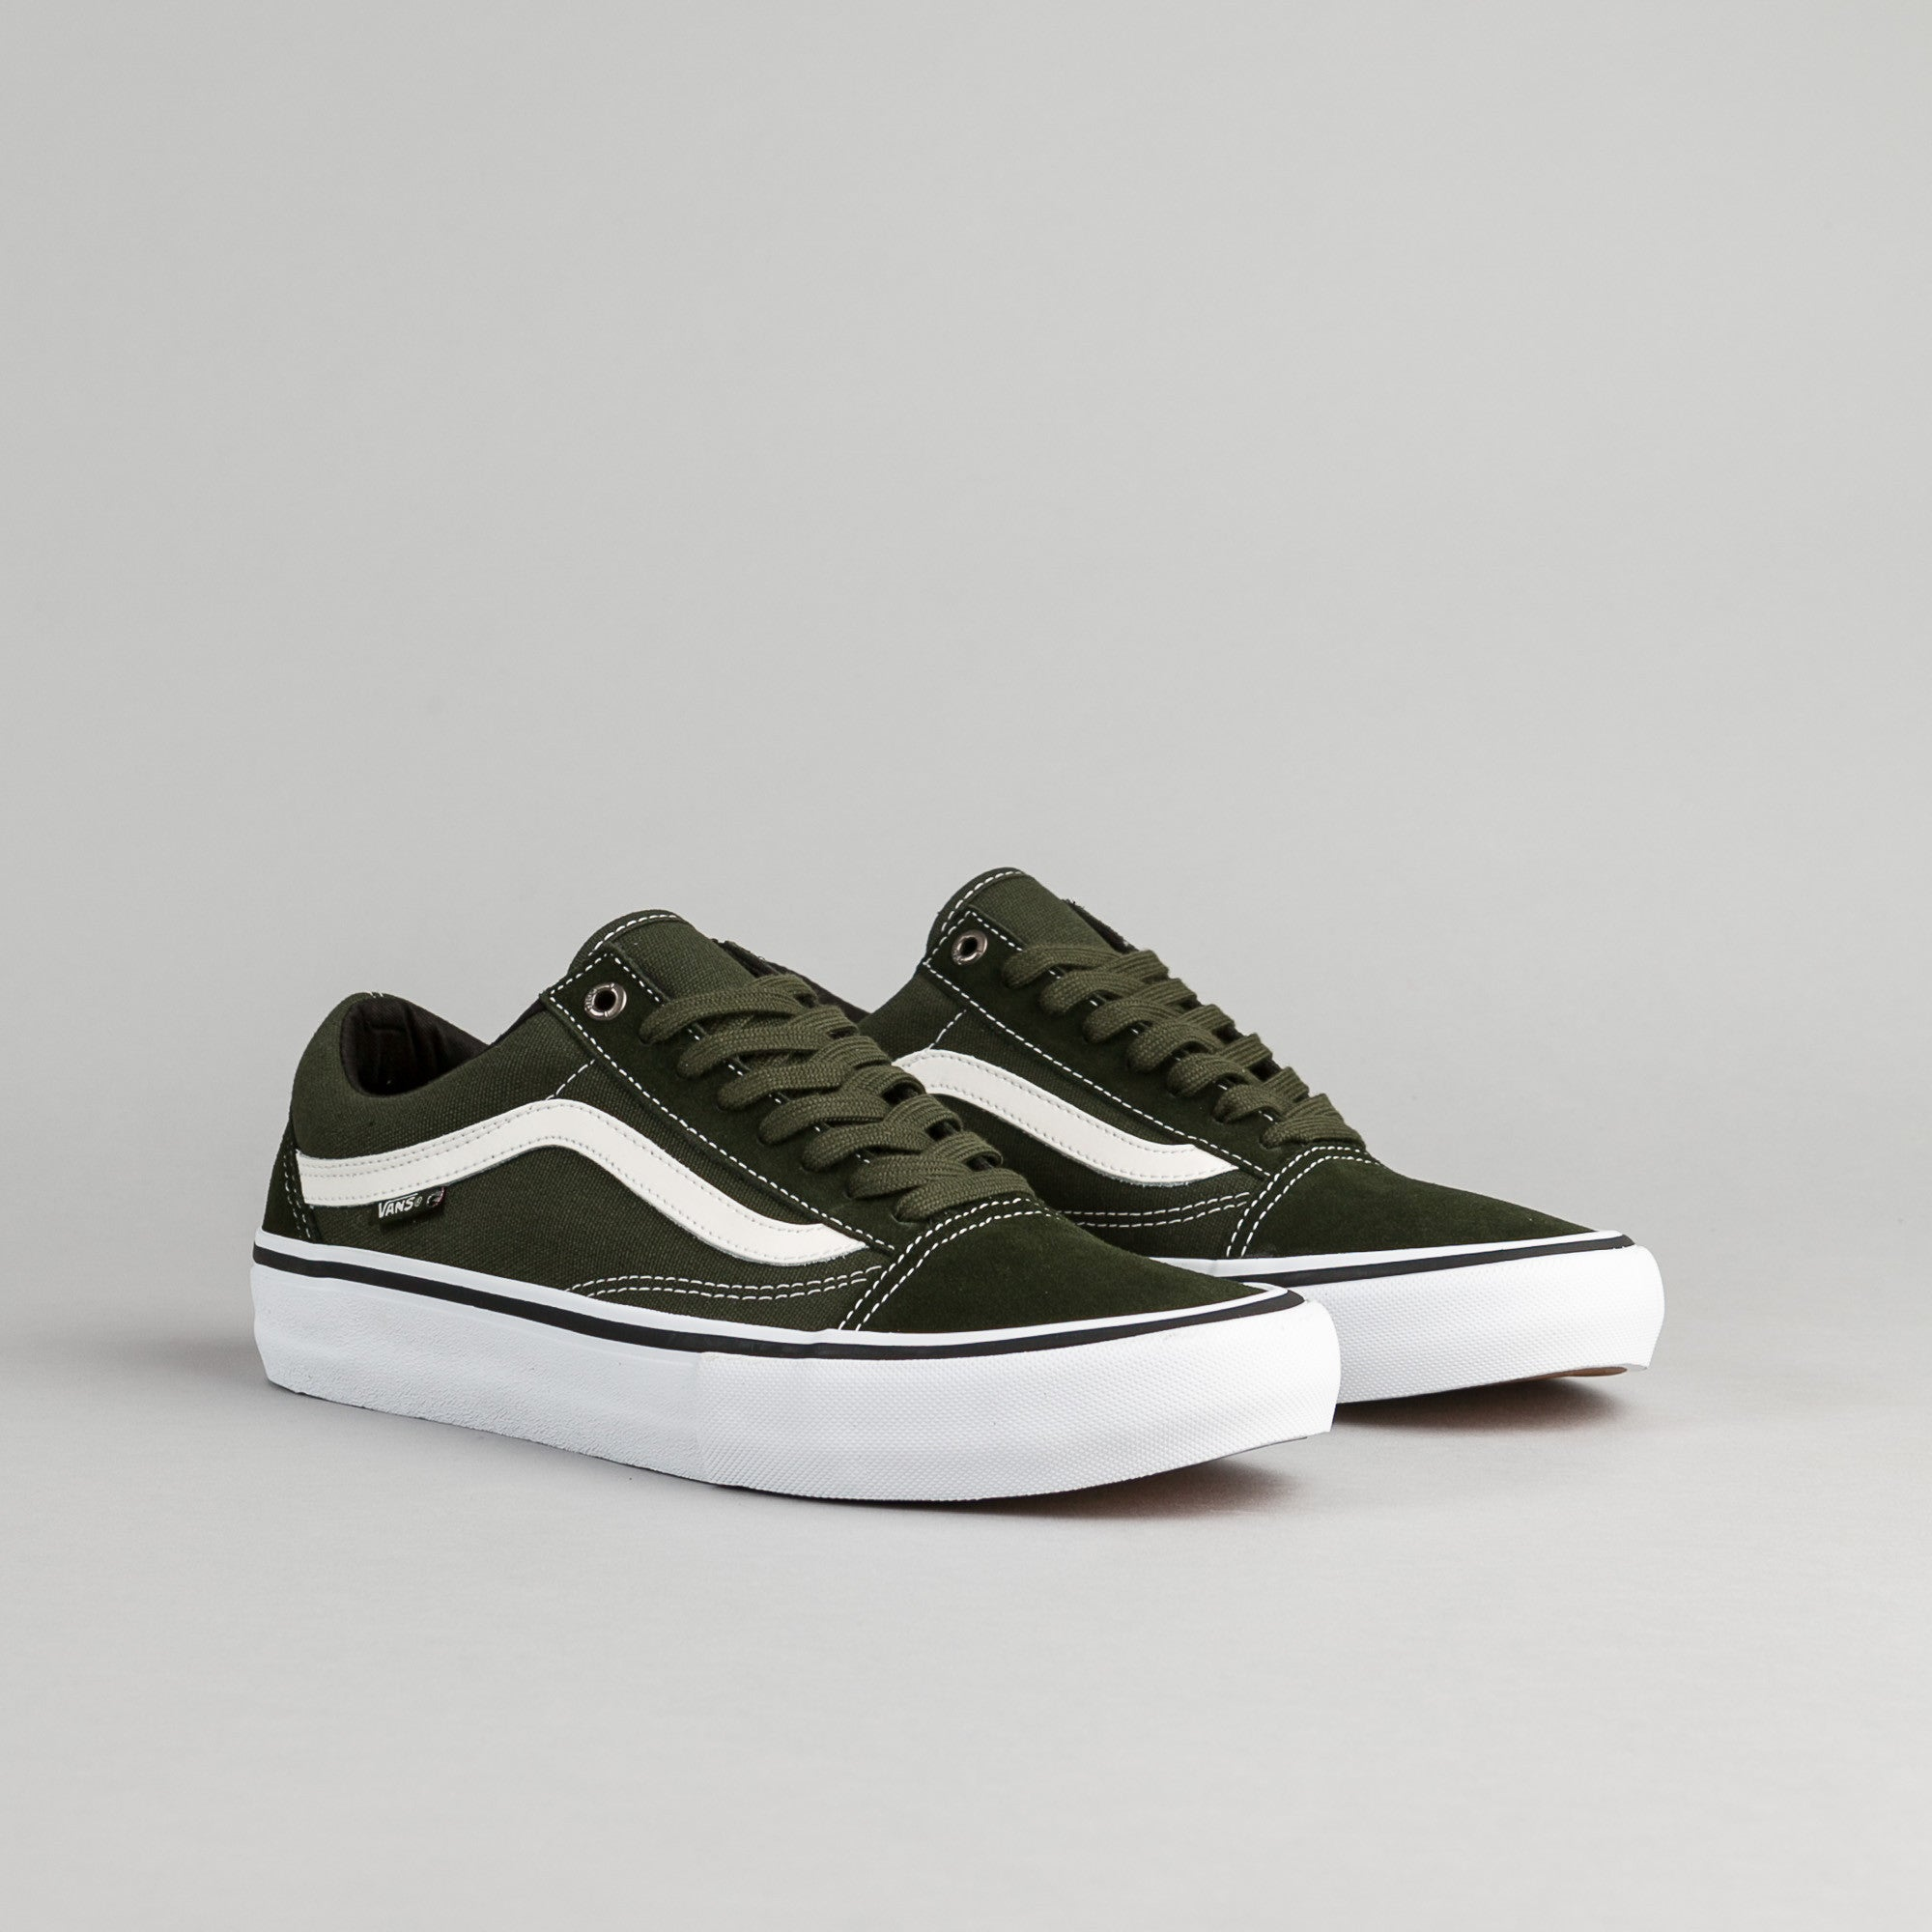 ... Vans Old Skool Pro Shoes - Rosin   White ... 2a2d7f4b24